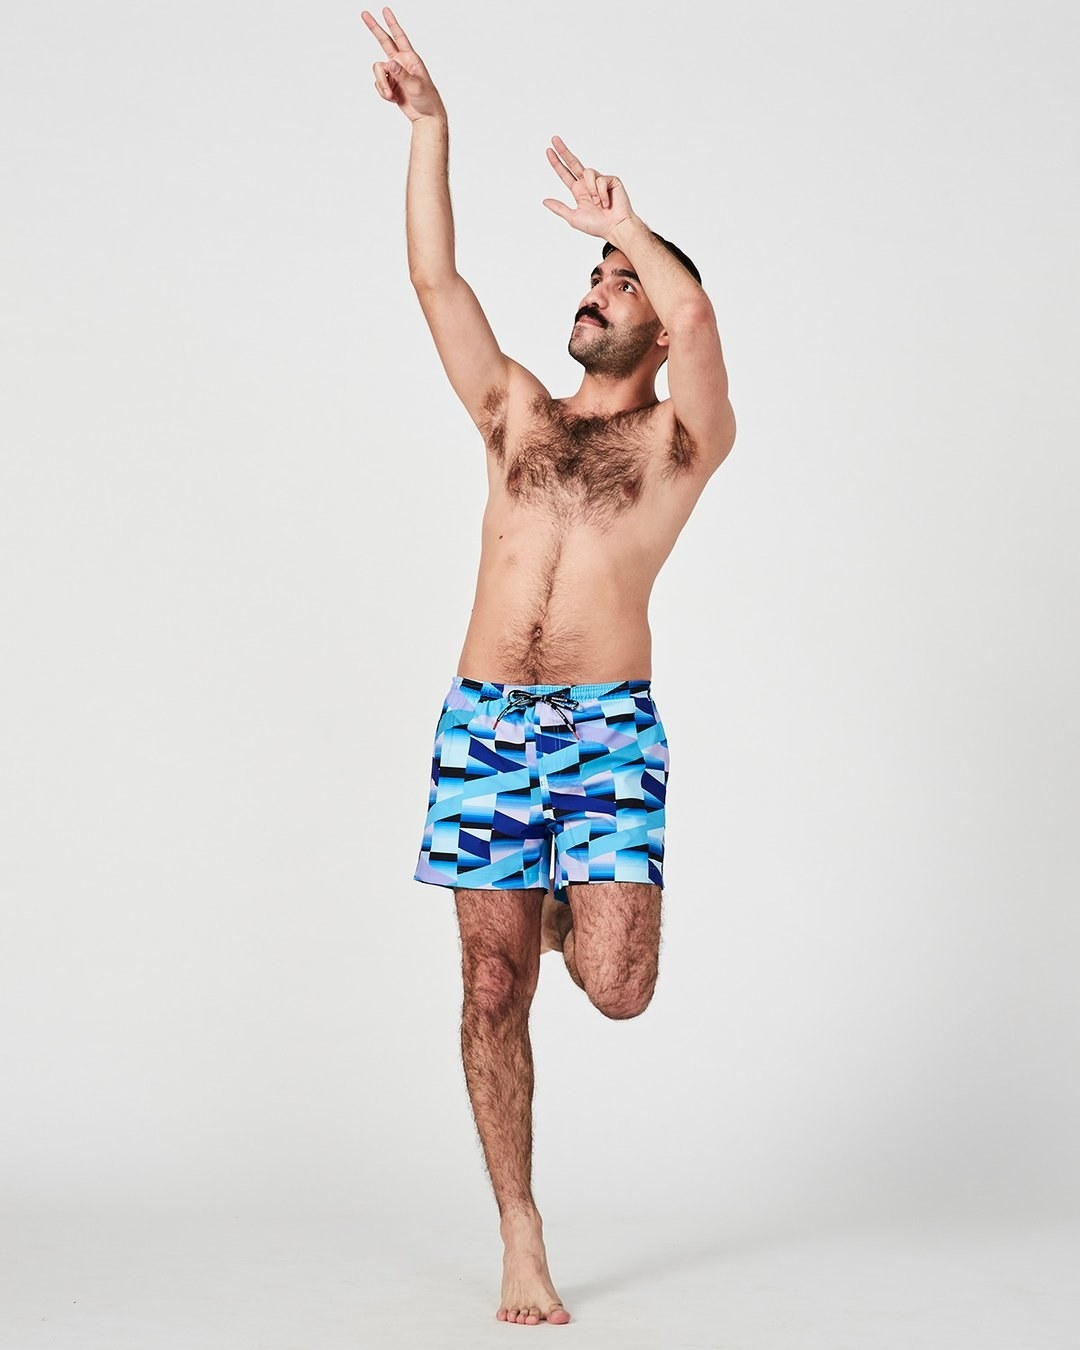 Model wearing the swim shorts with different shades of blue and white geometric rectangle print